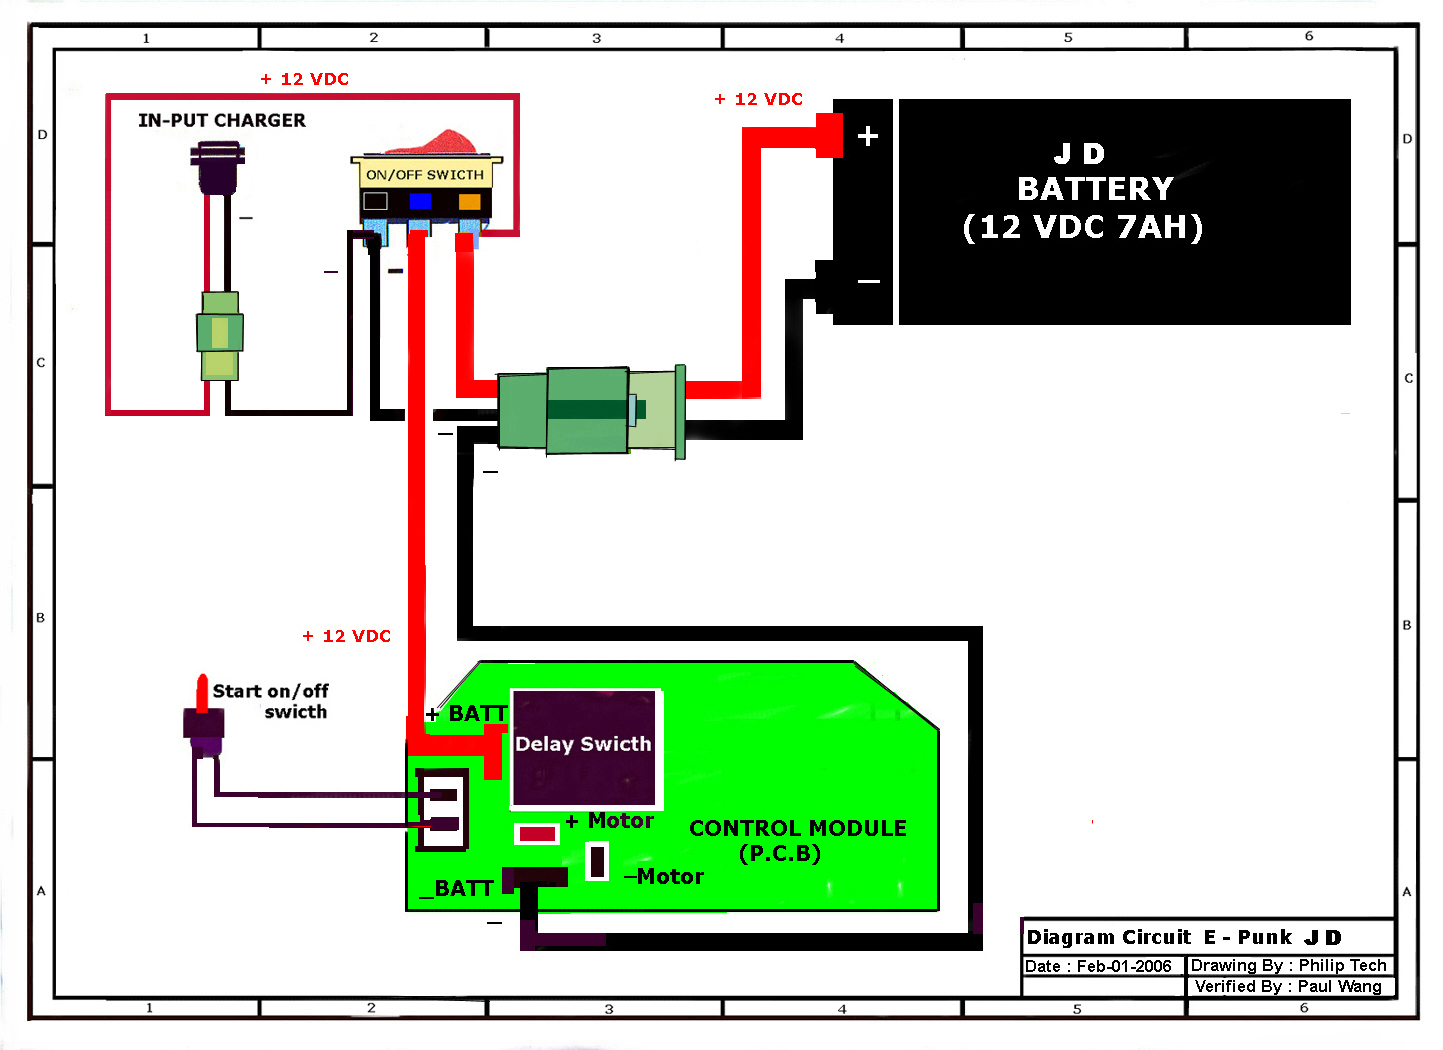 Razor E100 Battery Wiring Diagram Trusted Schematics 650 Electric Schematic E Scooter